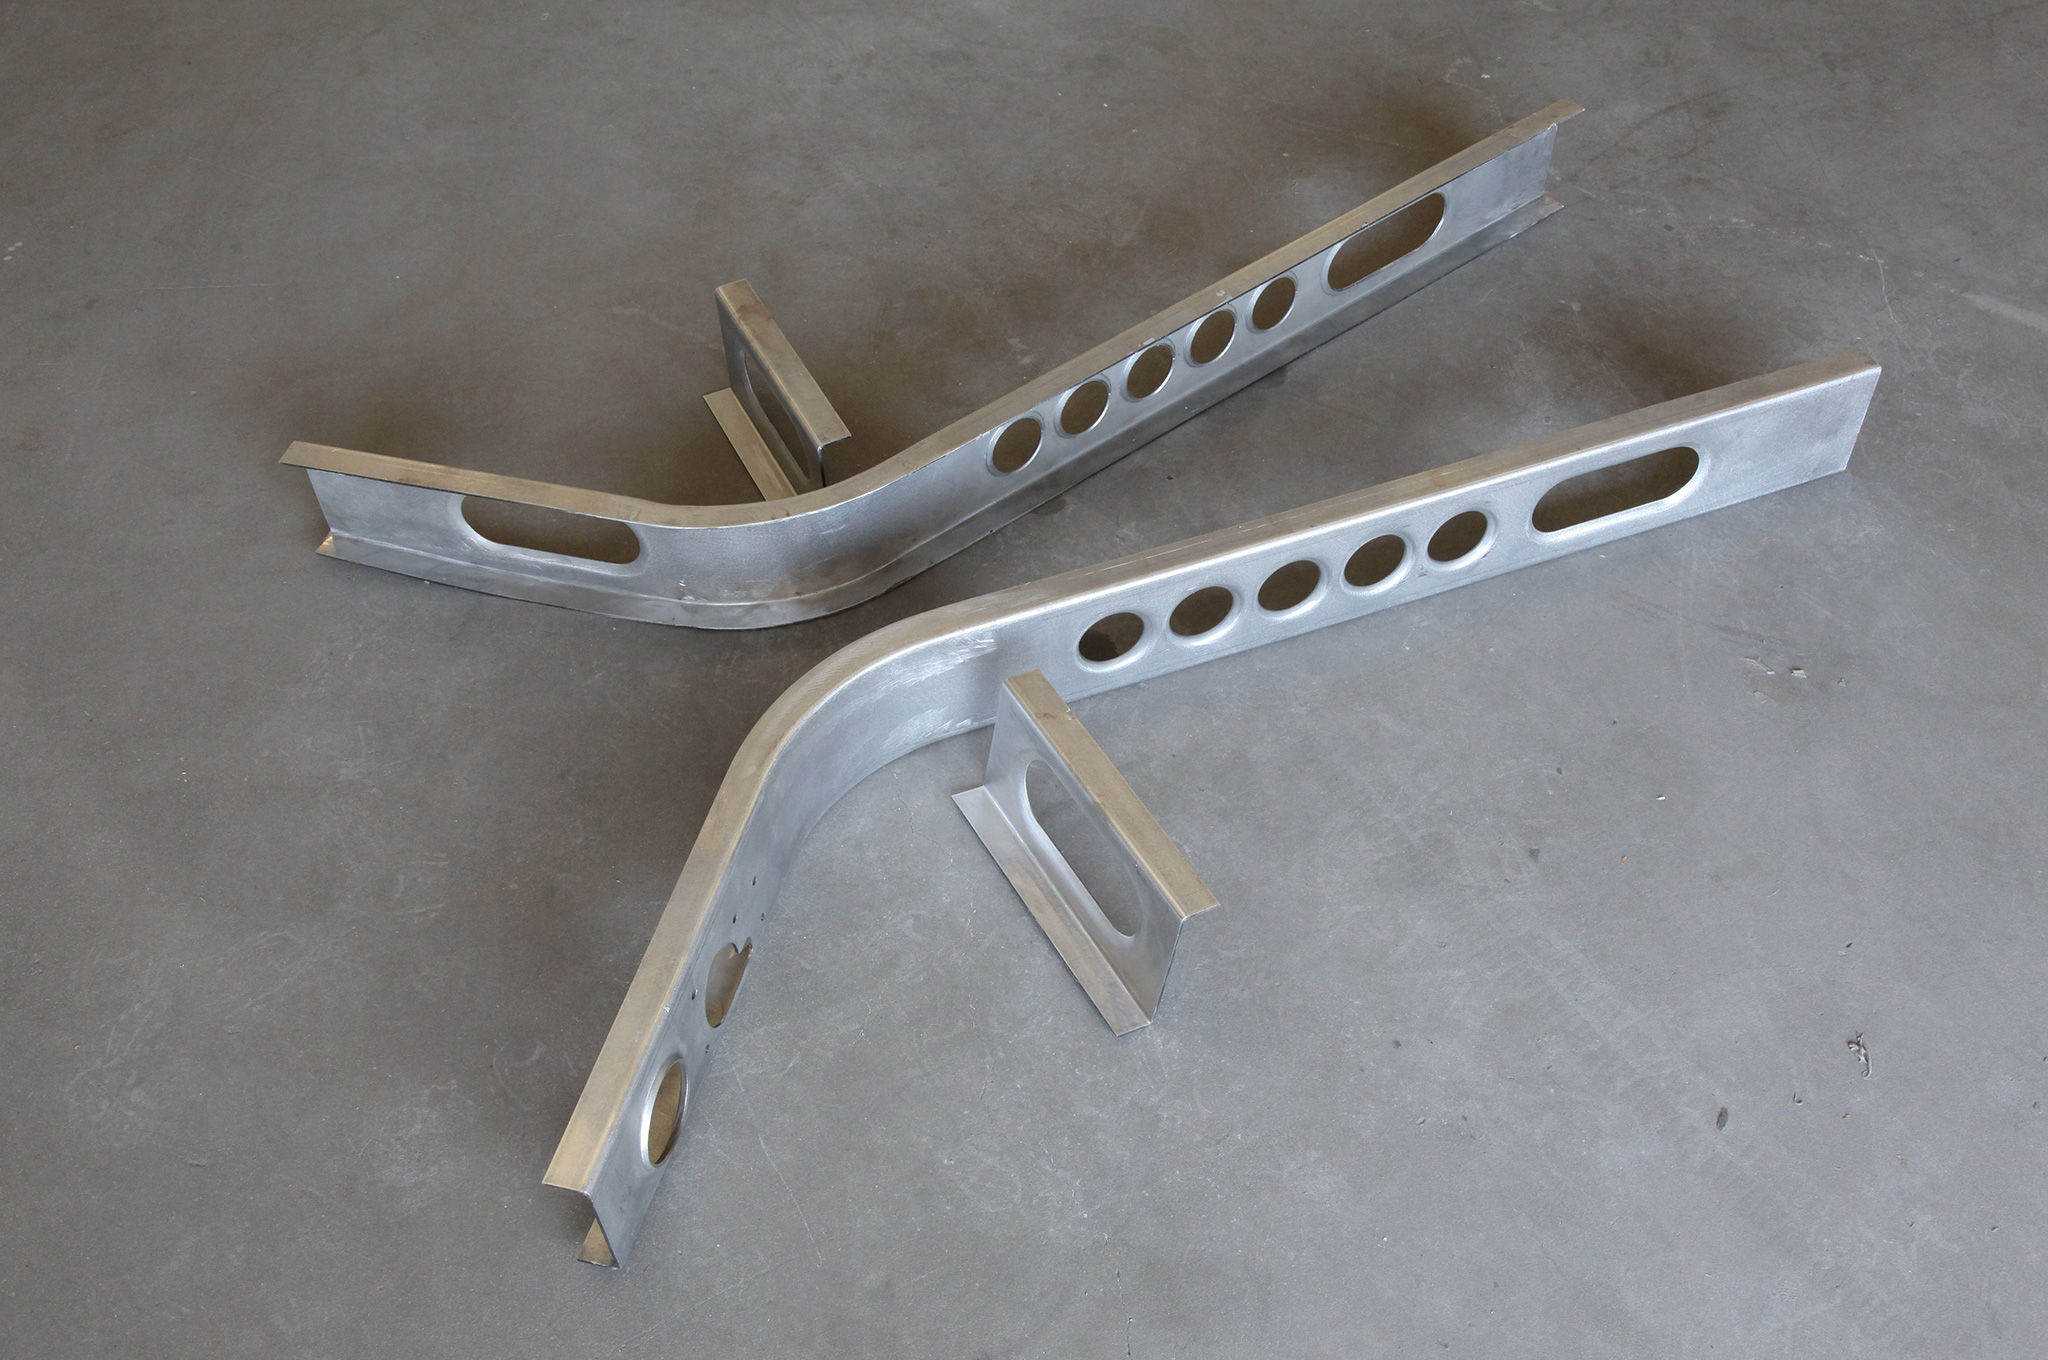 The X-member parts from Ionia also include some side bracing, with holes added so you can run exhaust tubing through them.